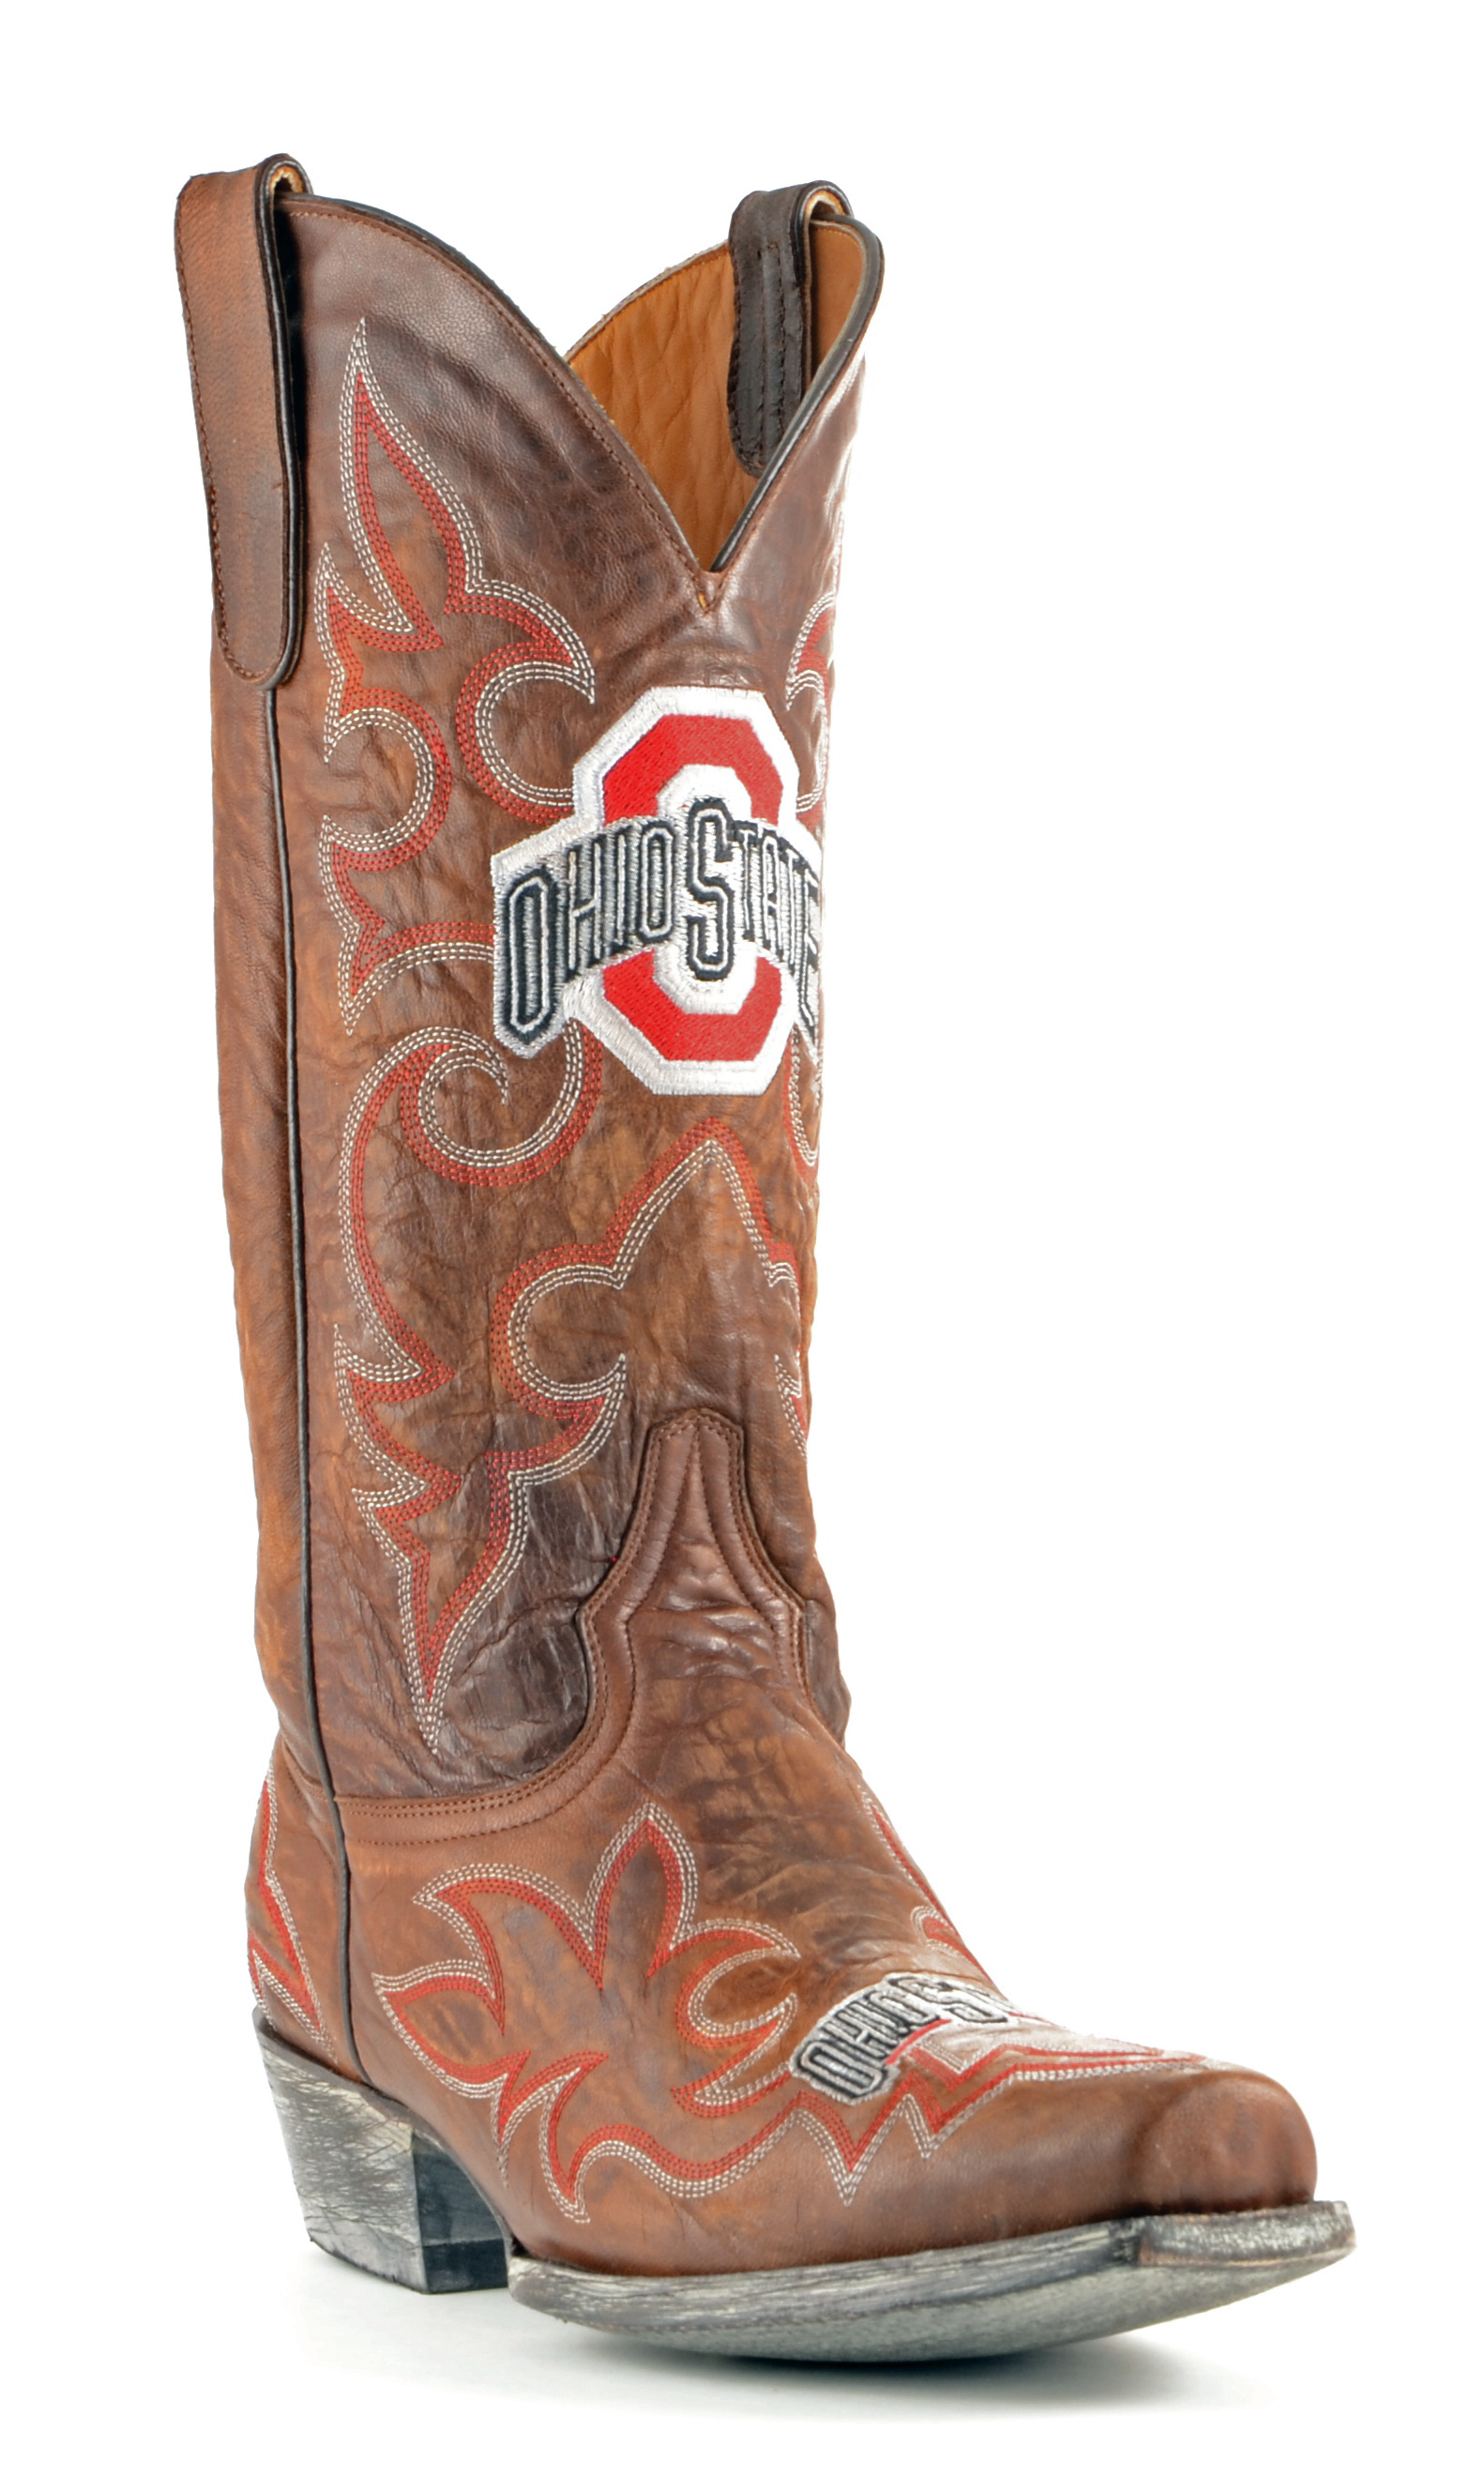 Gameday Boots Mens Leather Ohio State Cowboy Boots by GameDay Boots